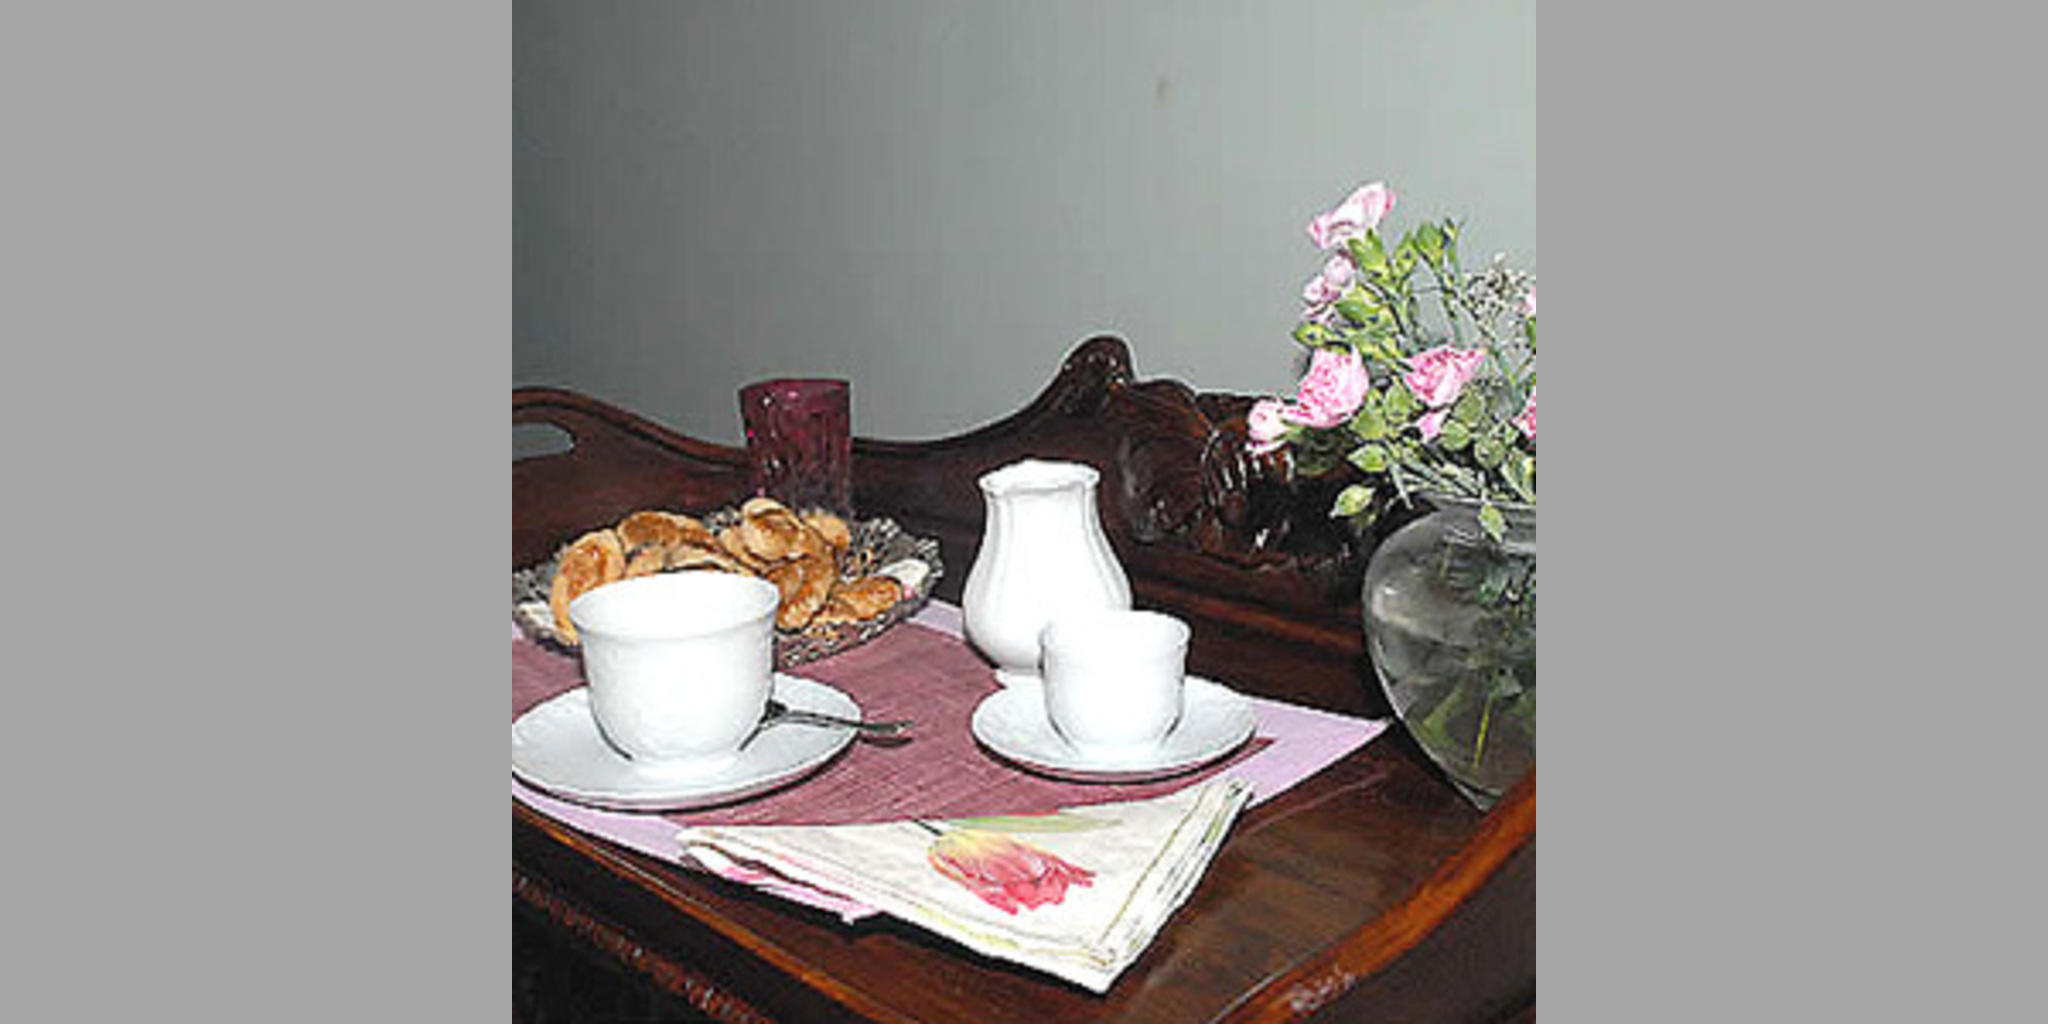 Bed & Breakfast Napoli - Martucci